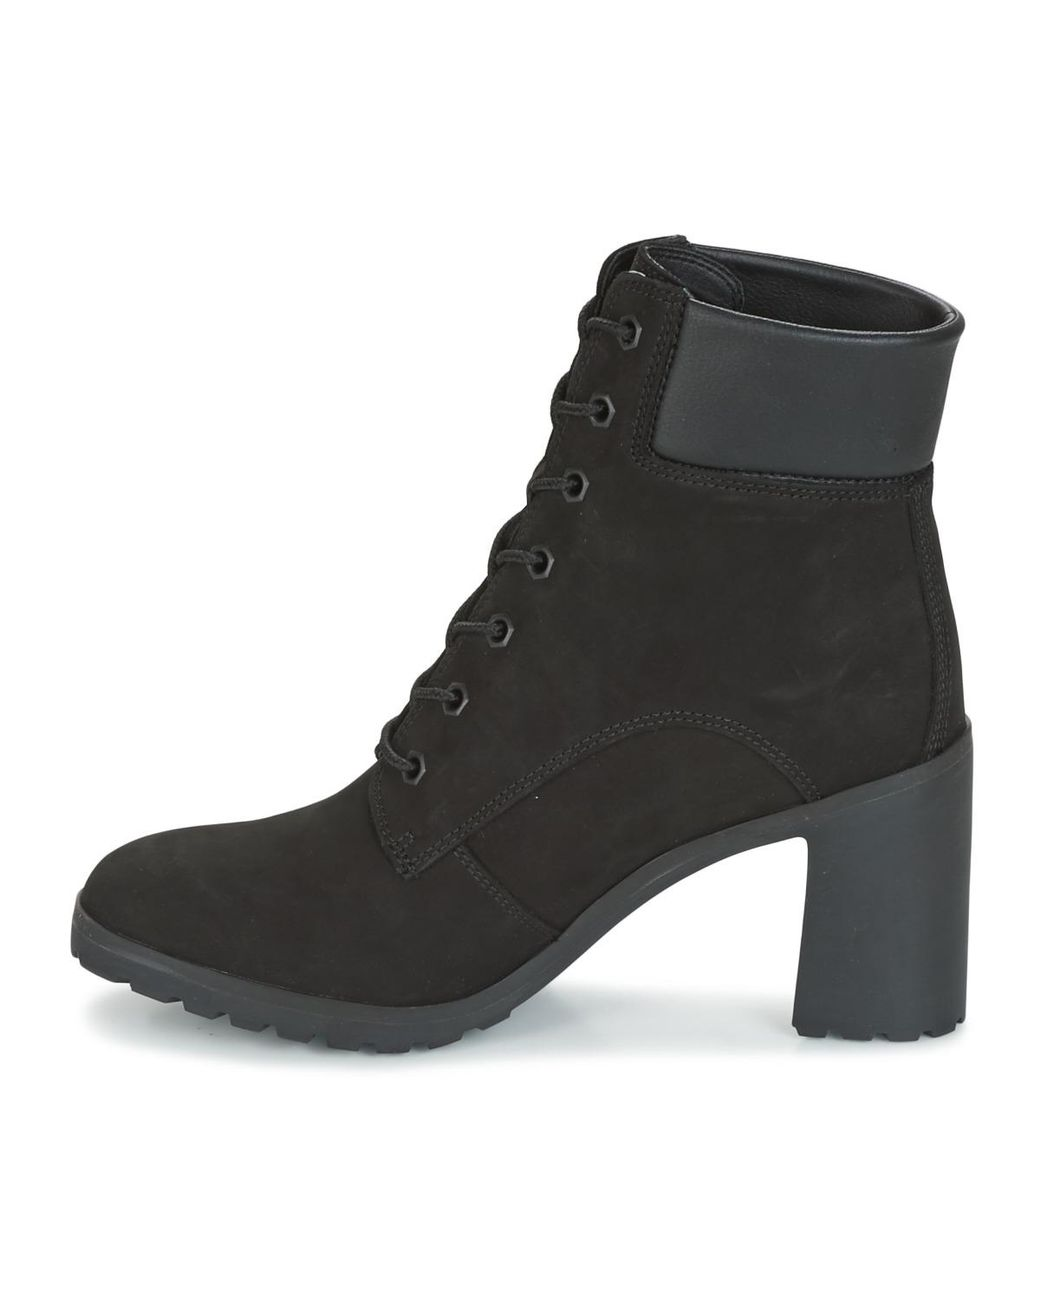 bfe62106f77 Timberland Allington 6in Lace Up Low Ankle Boots in Black - Lyst